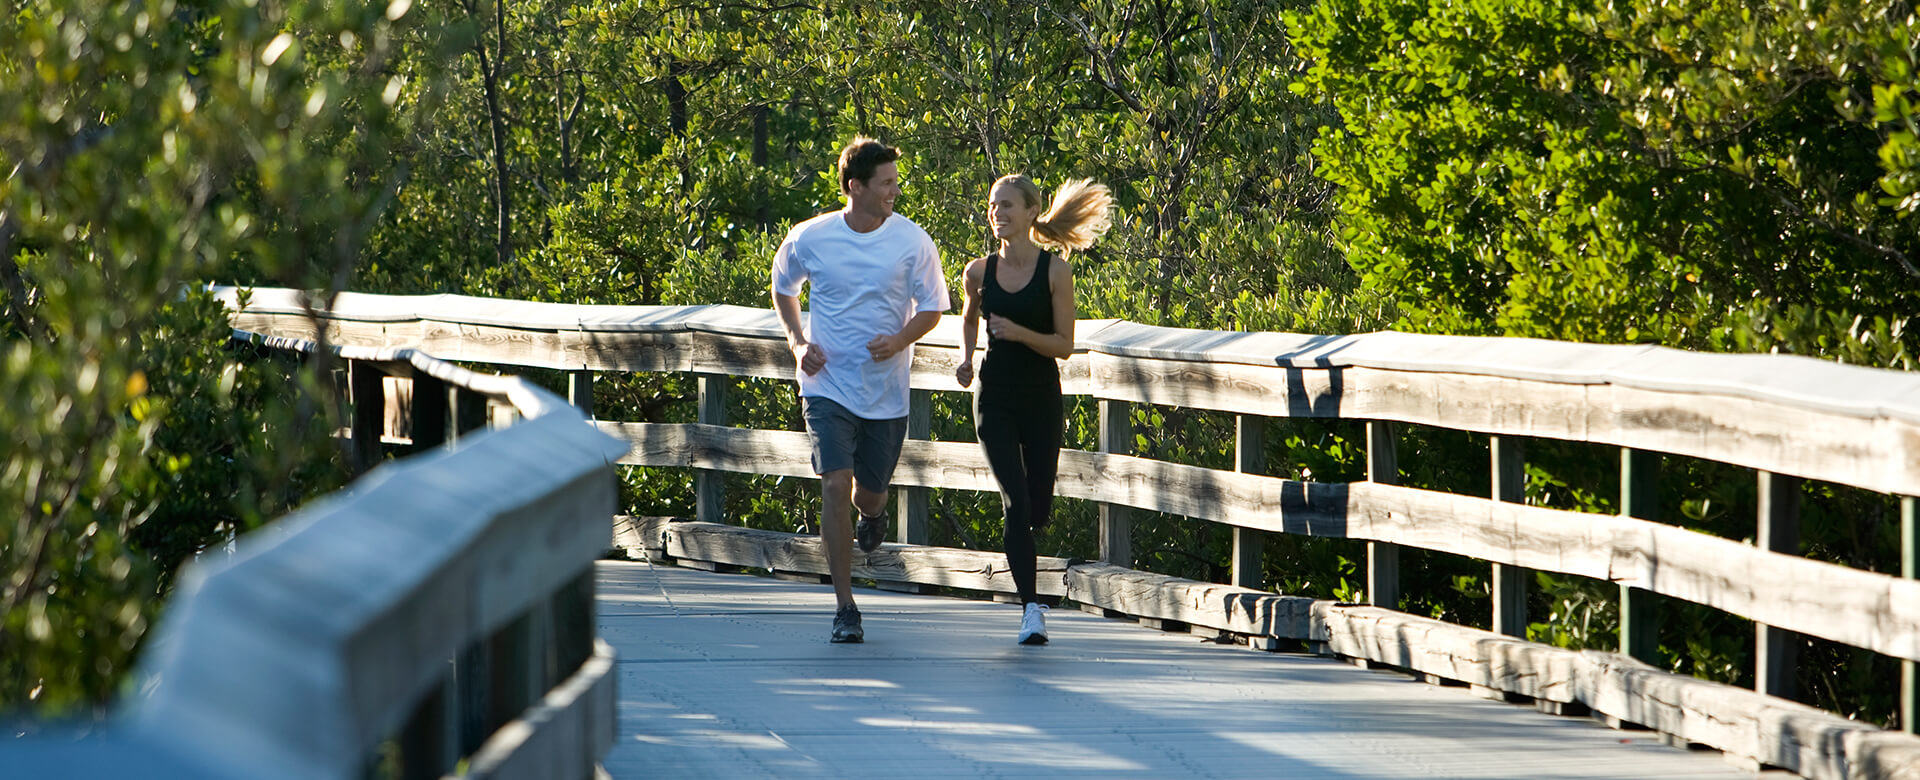 couple jogging on the boardwalk